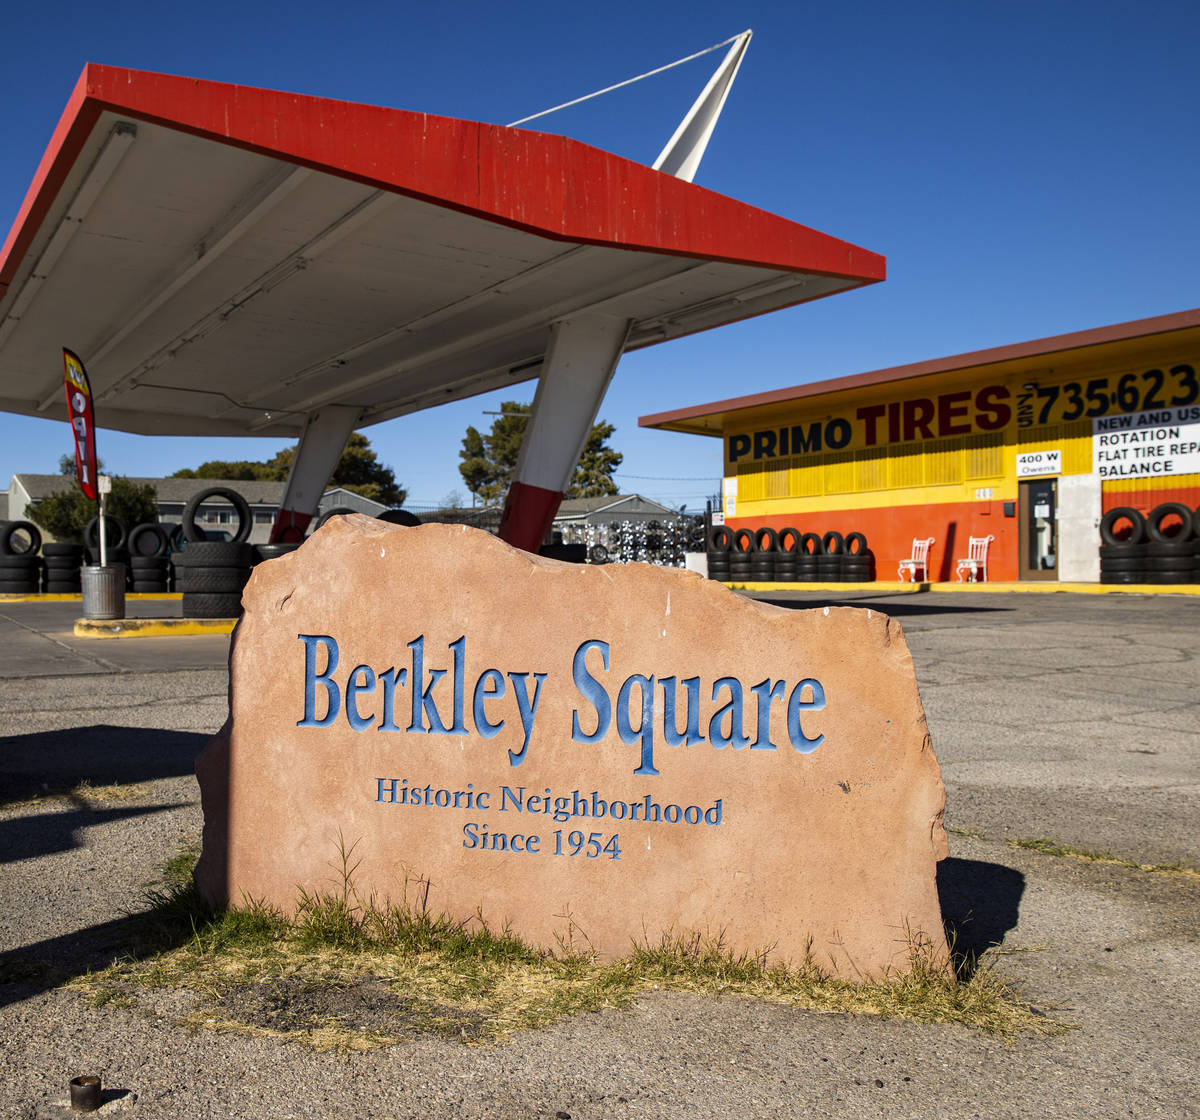 A historic marker for the Berkley Square neighborhood, which was designed by architect Paul R. ...